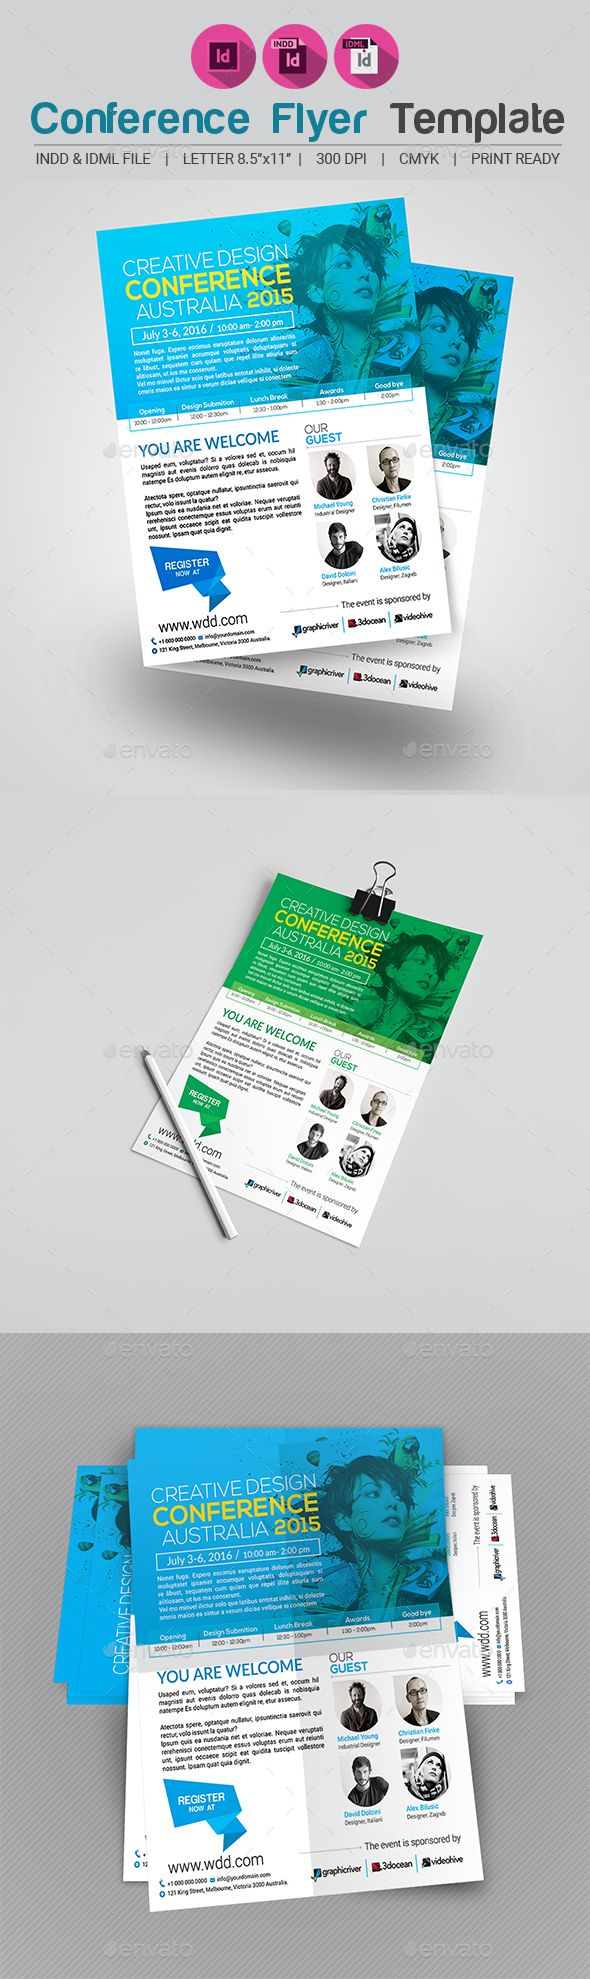 Conference Flyer V  Flyer Template Template And Adobe Indesign